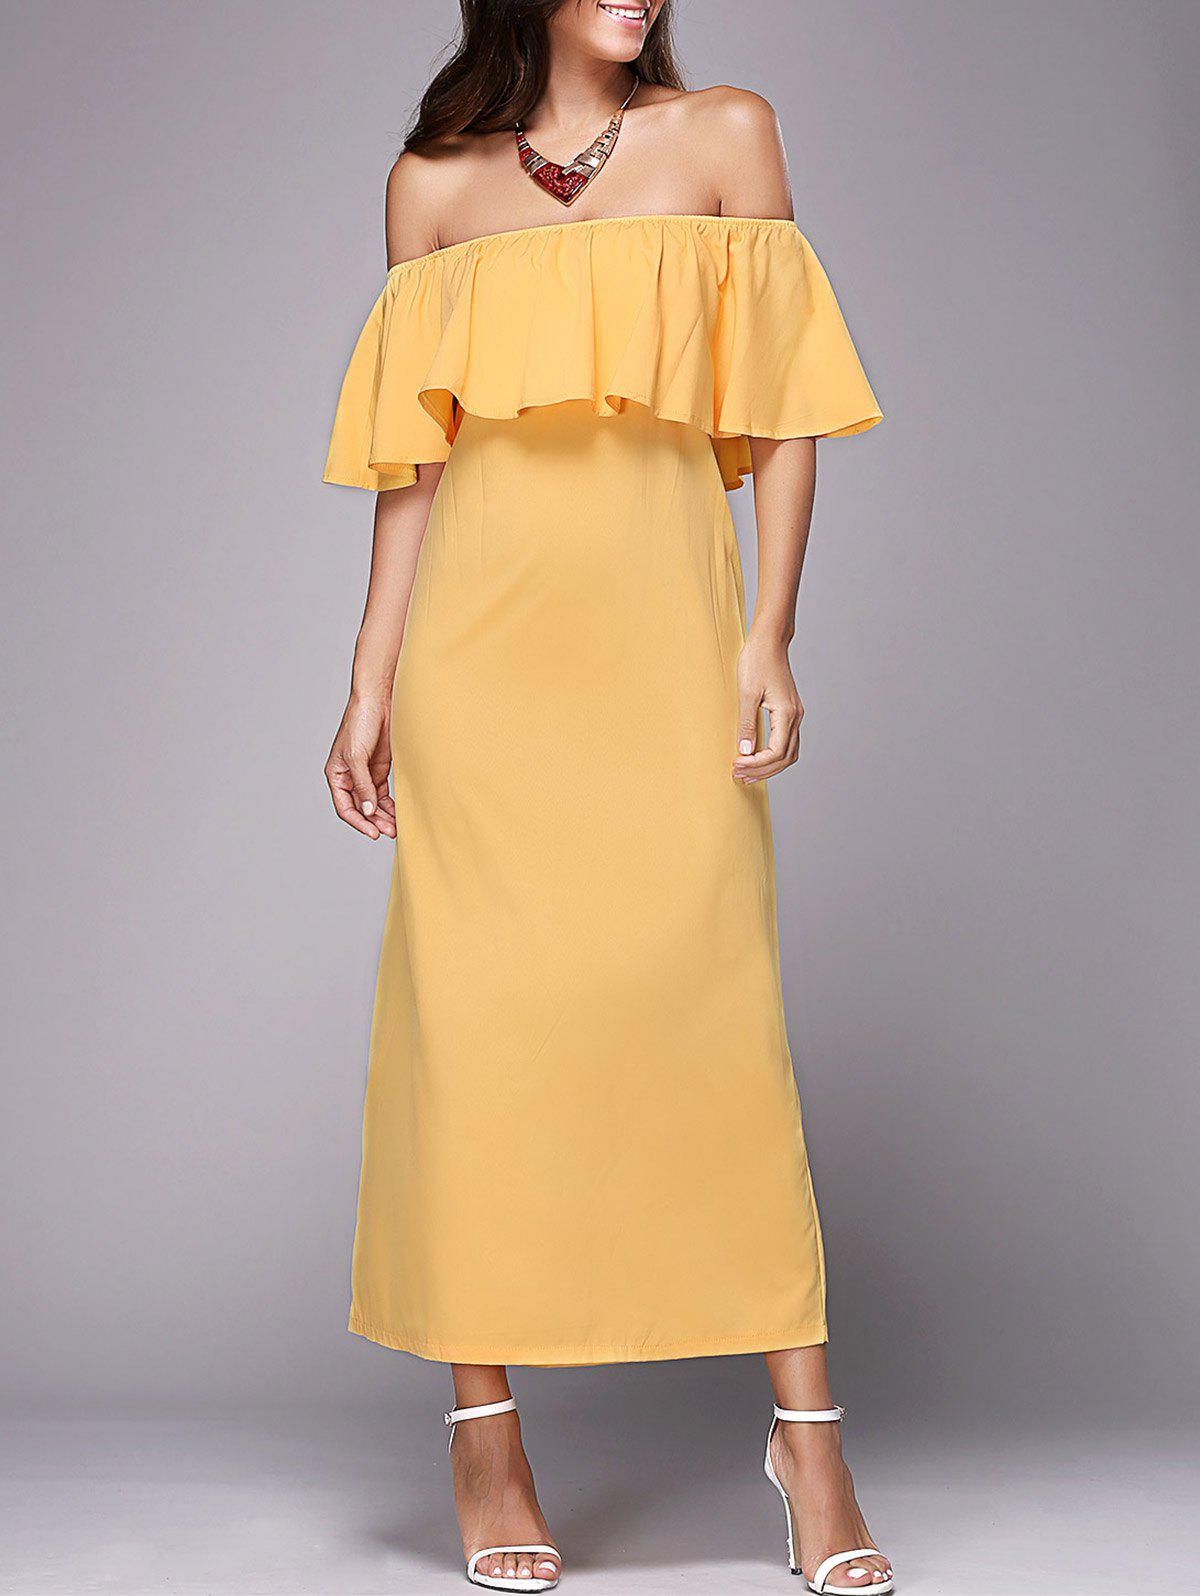 Sexy Off-The-Shoulder Short Sleeve Solid Color Flounced Women's Dress